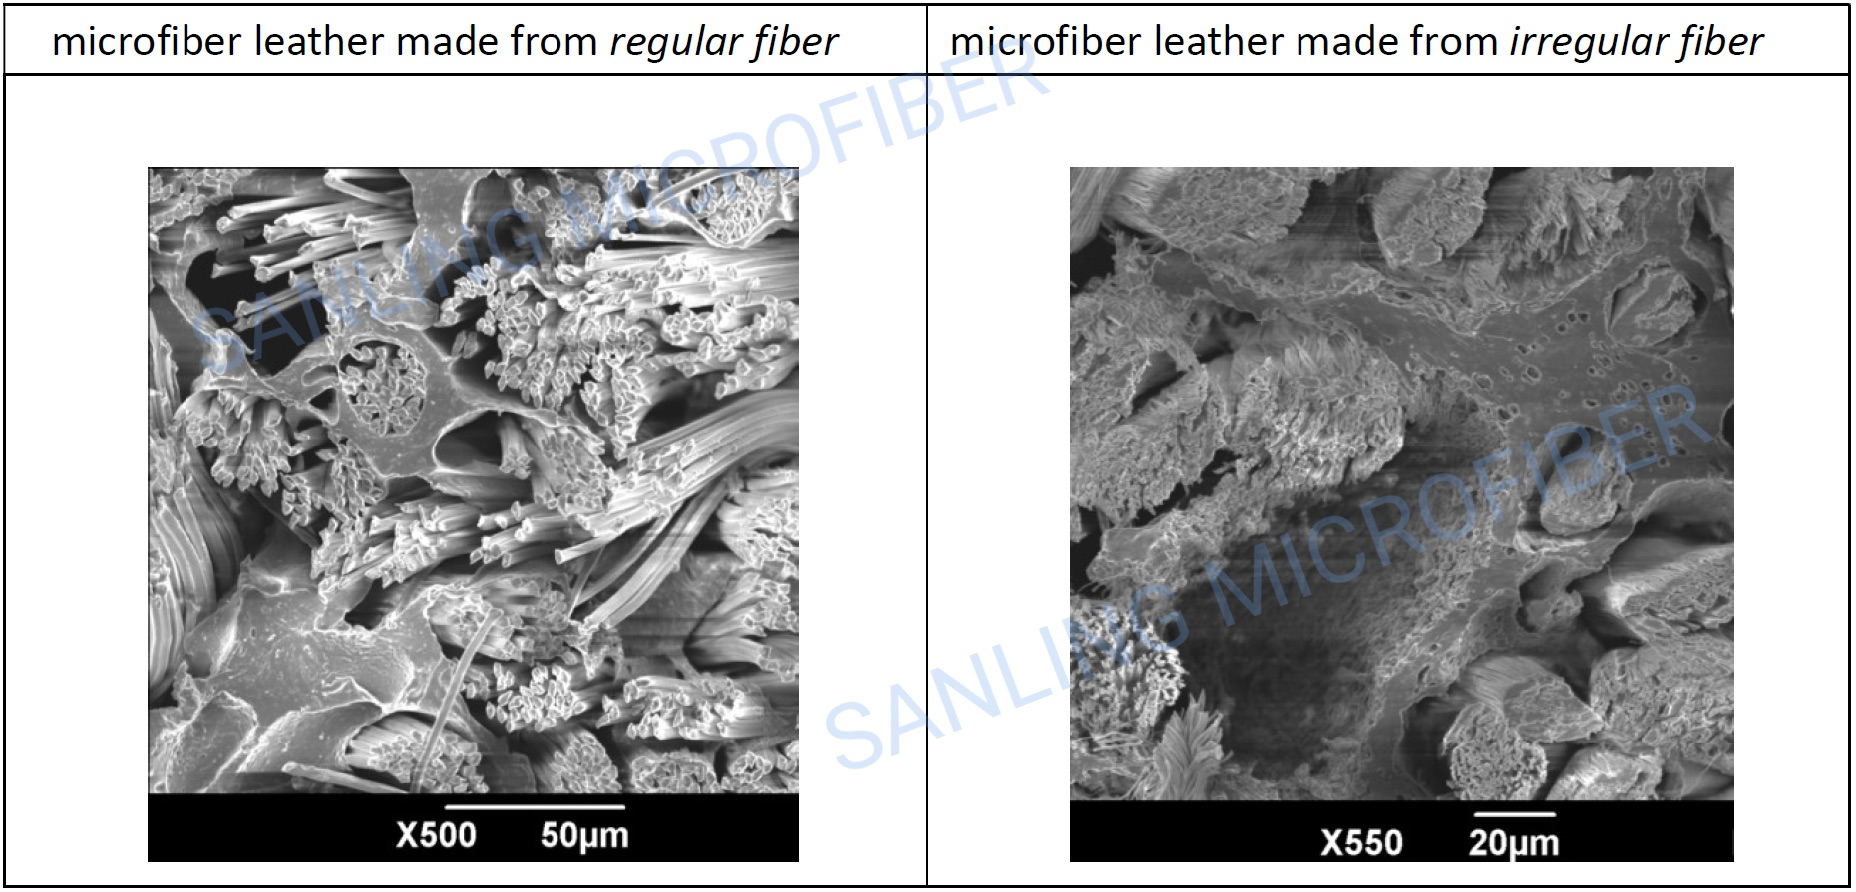 microfiber leather under microscope